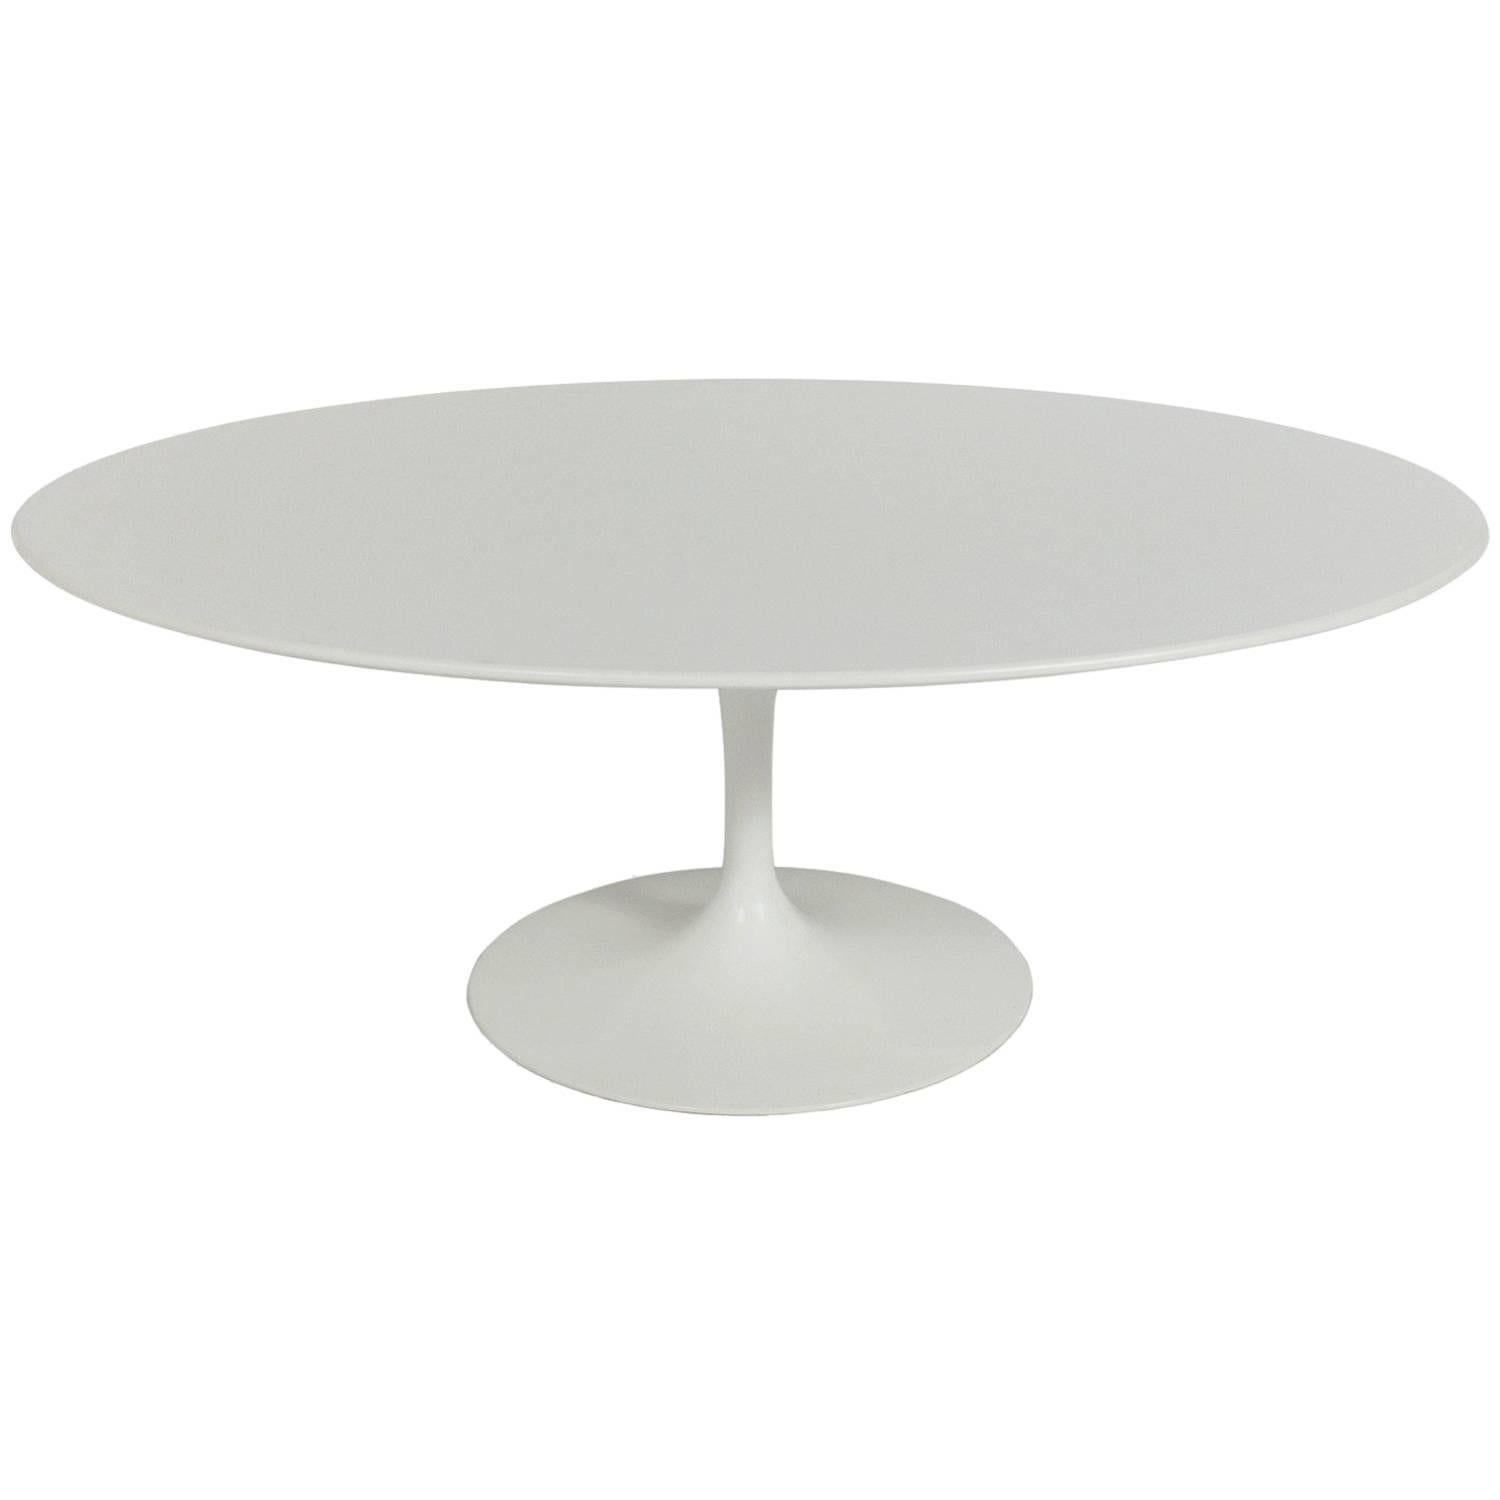 Bon Oval Tulip Coffee Table By Eero Saarinen For Knoll For Sale